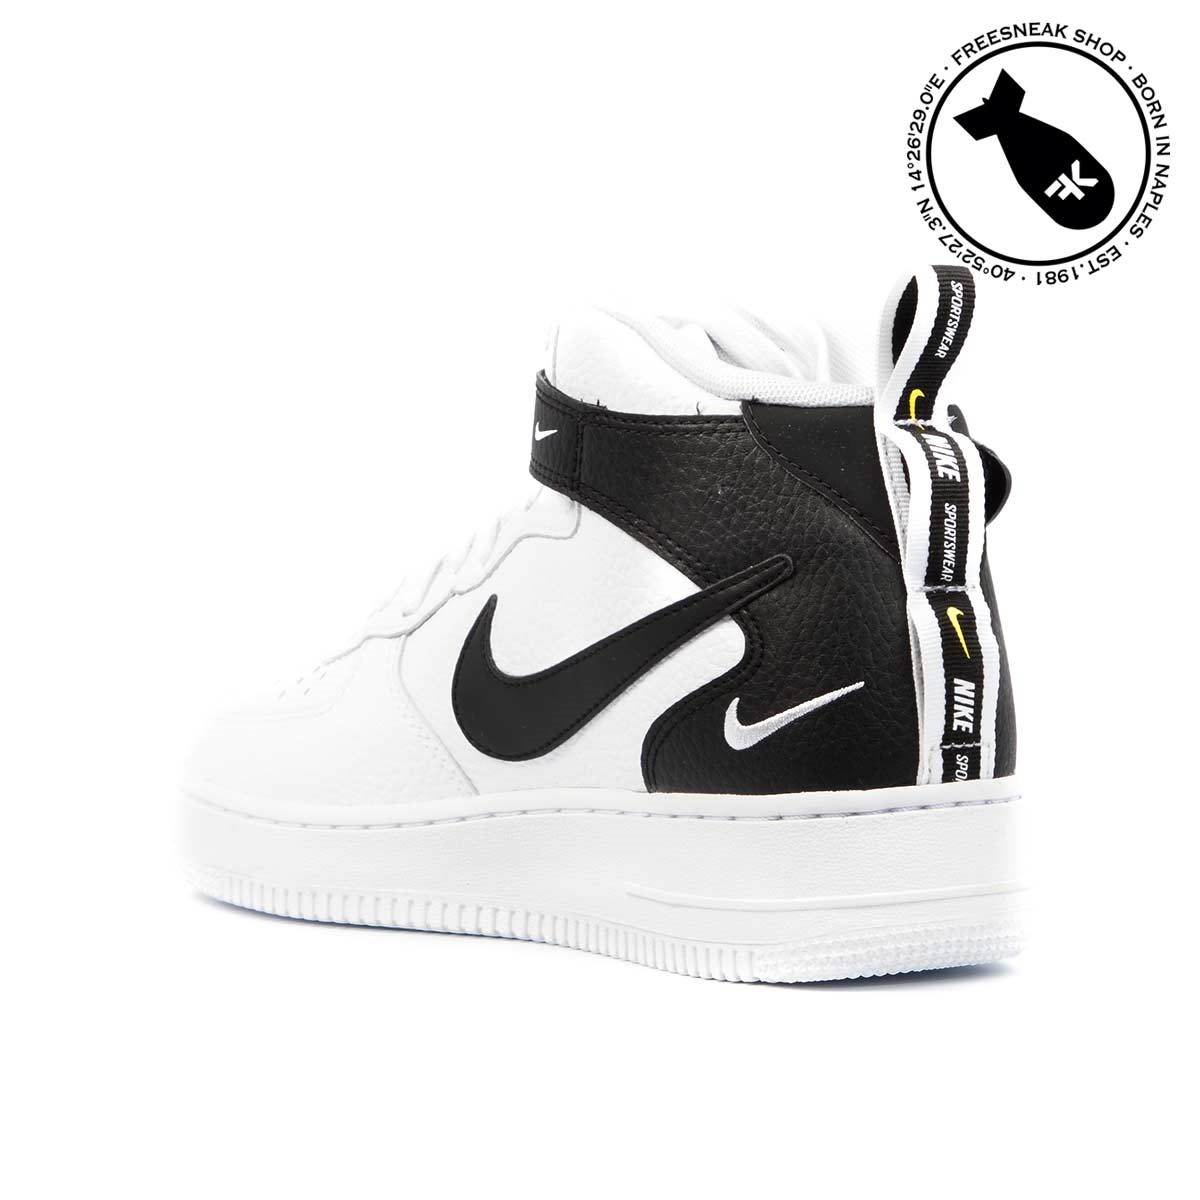 Sneakers Nike Air 1 Mid White Lv8 Force 2WI9HED